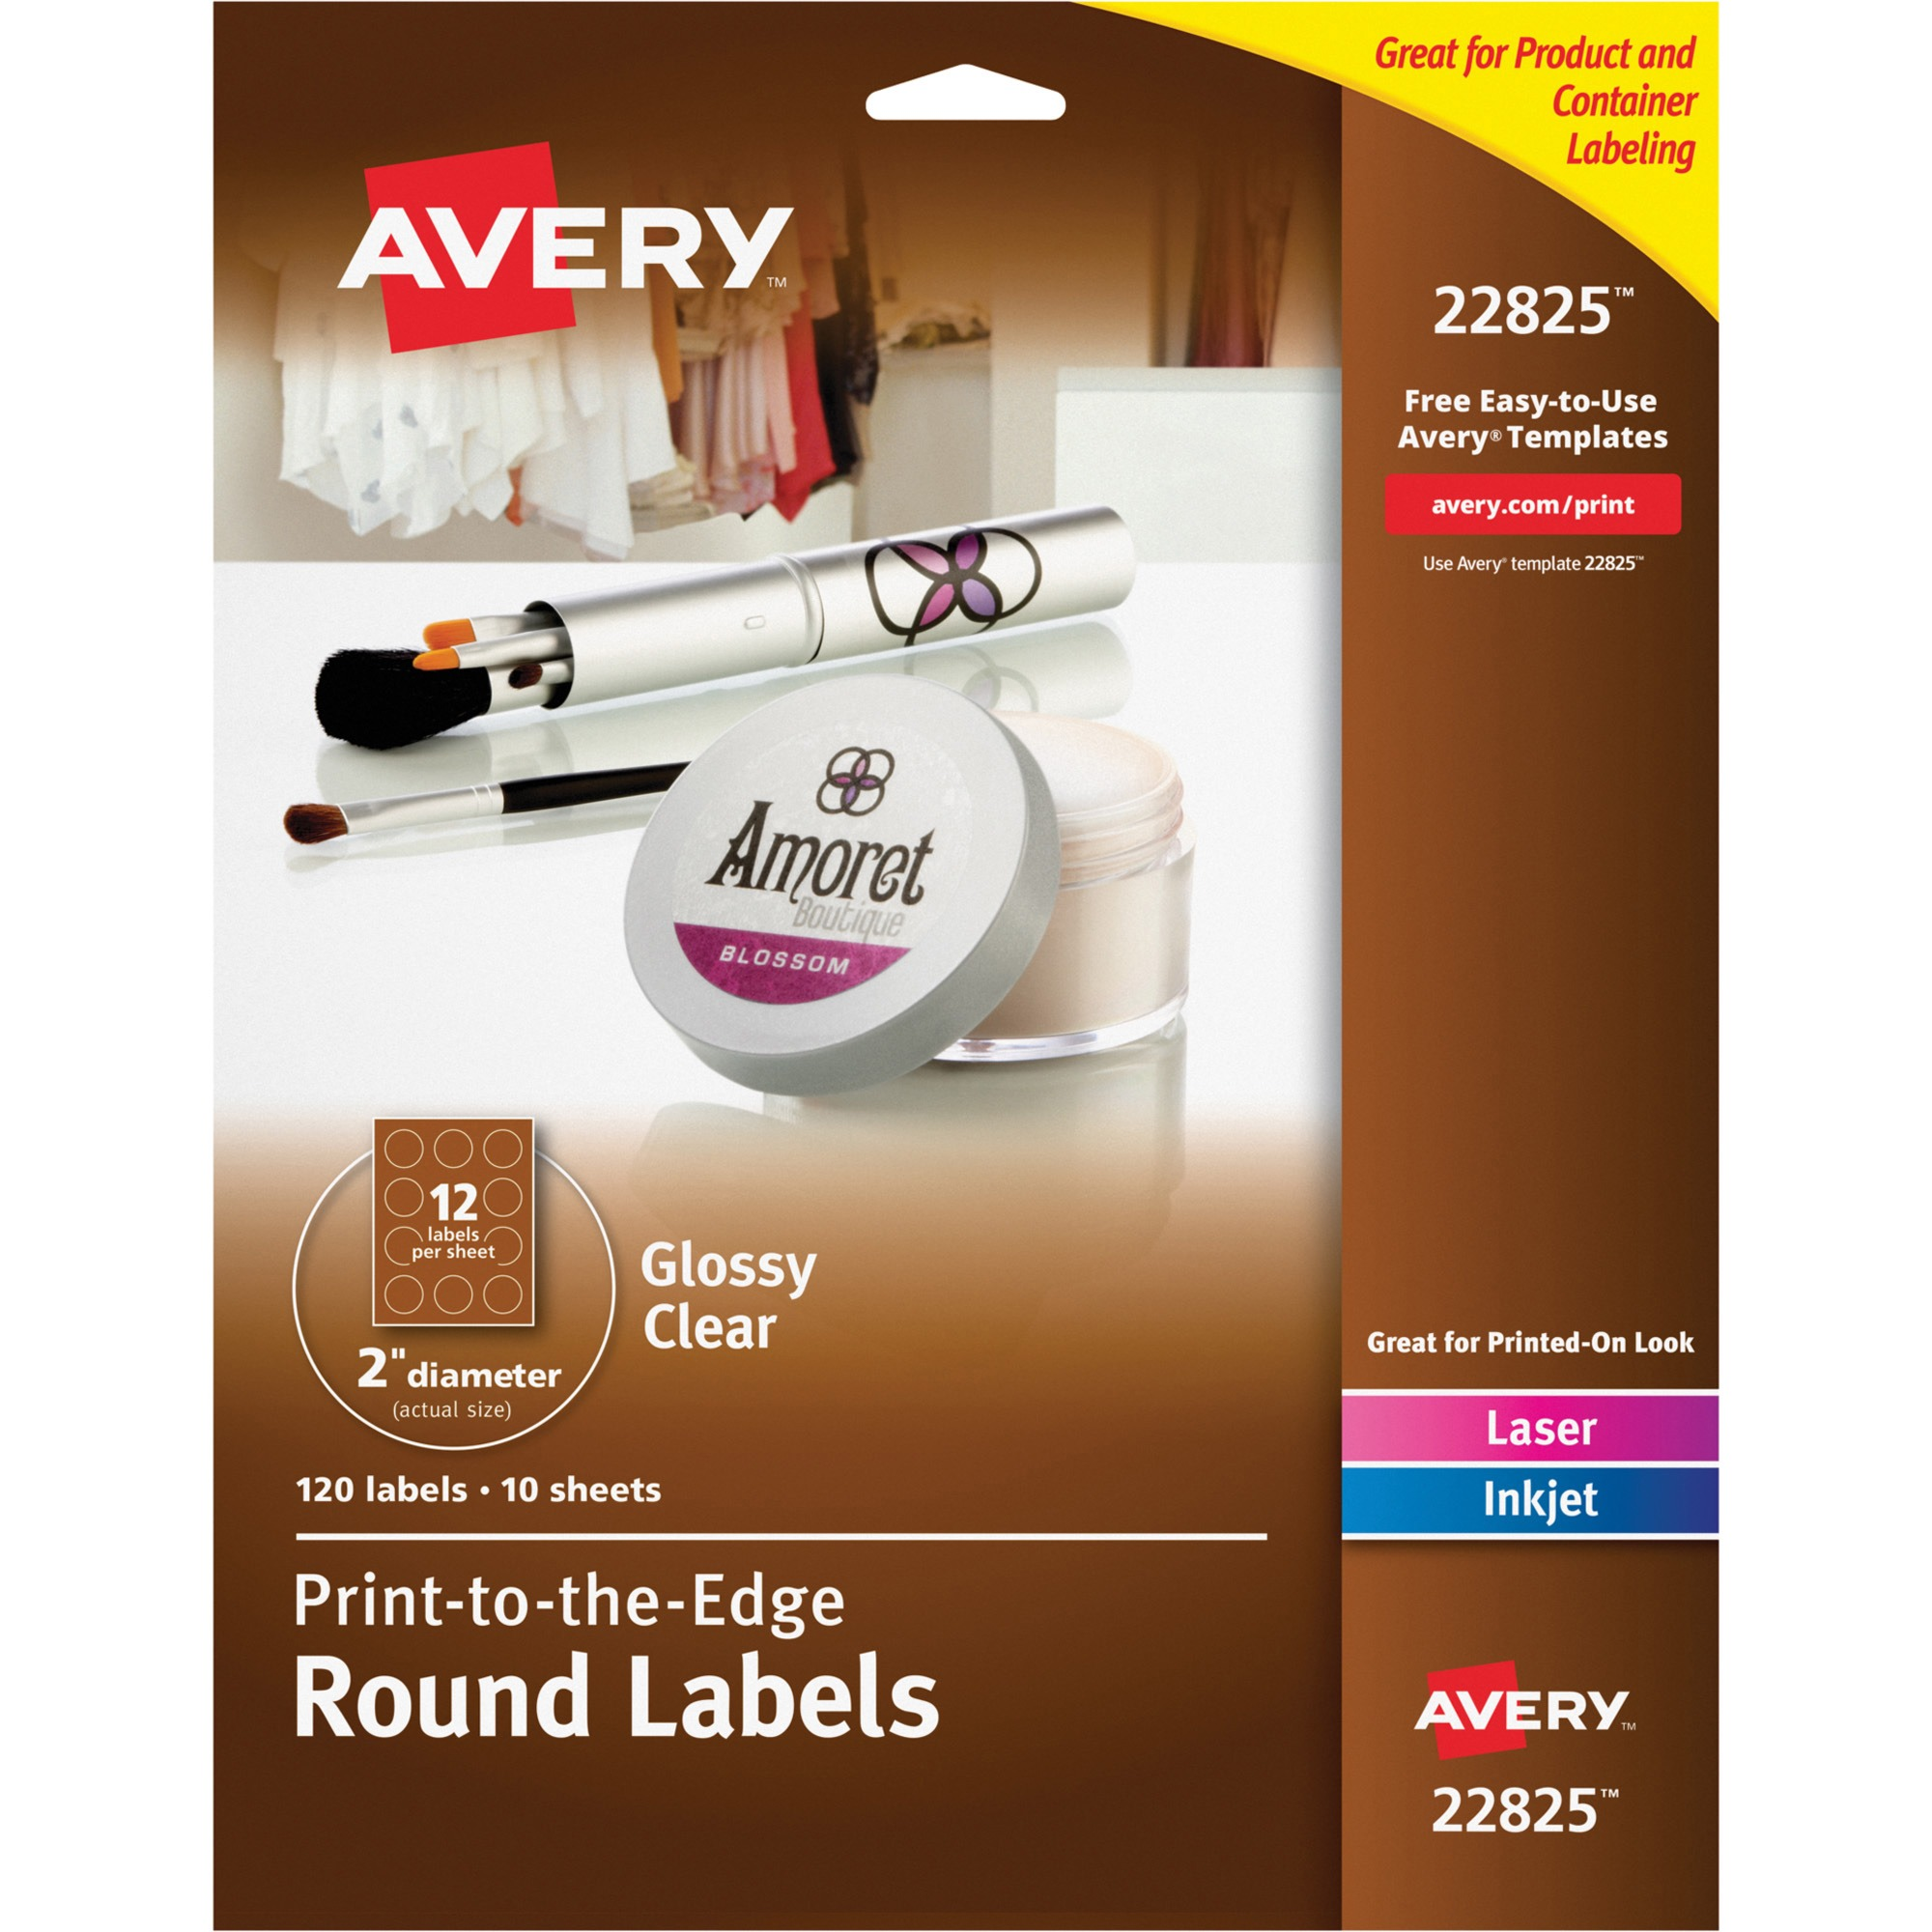 Glossy Clear Print-to-the-Edge Round Labels